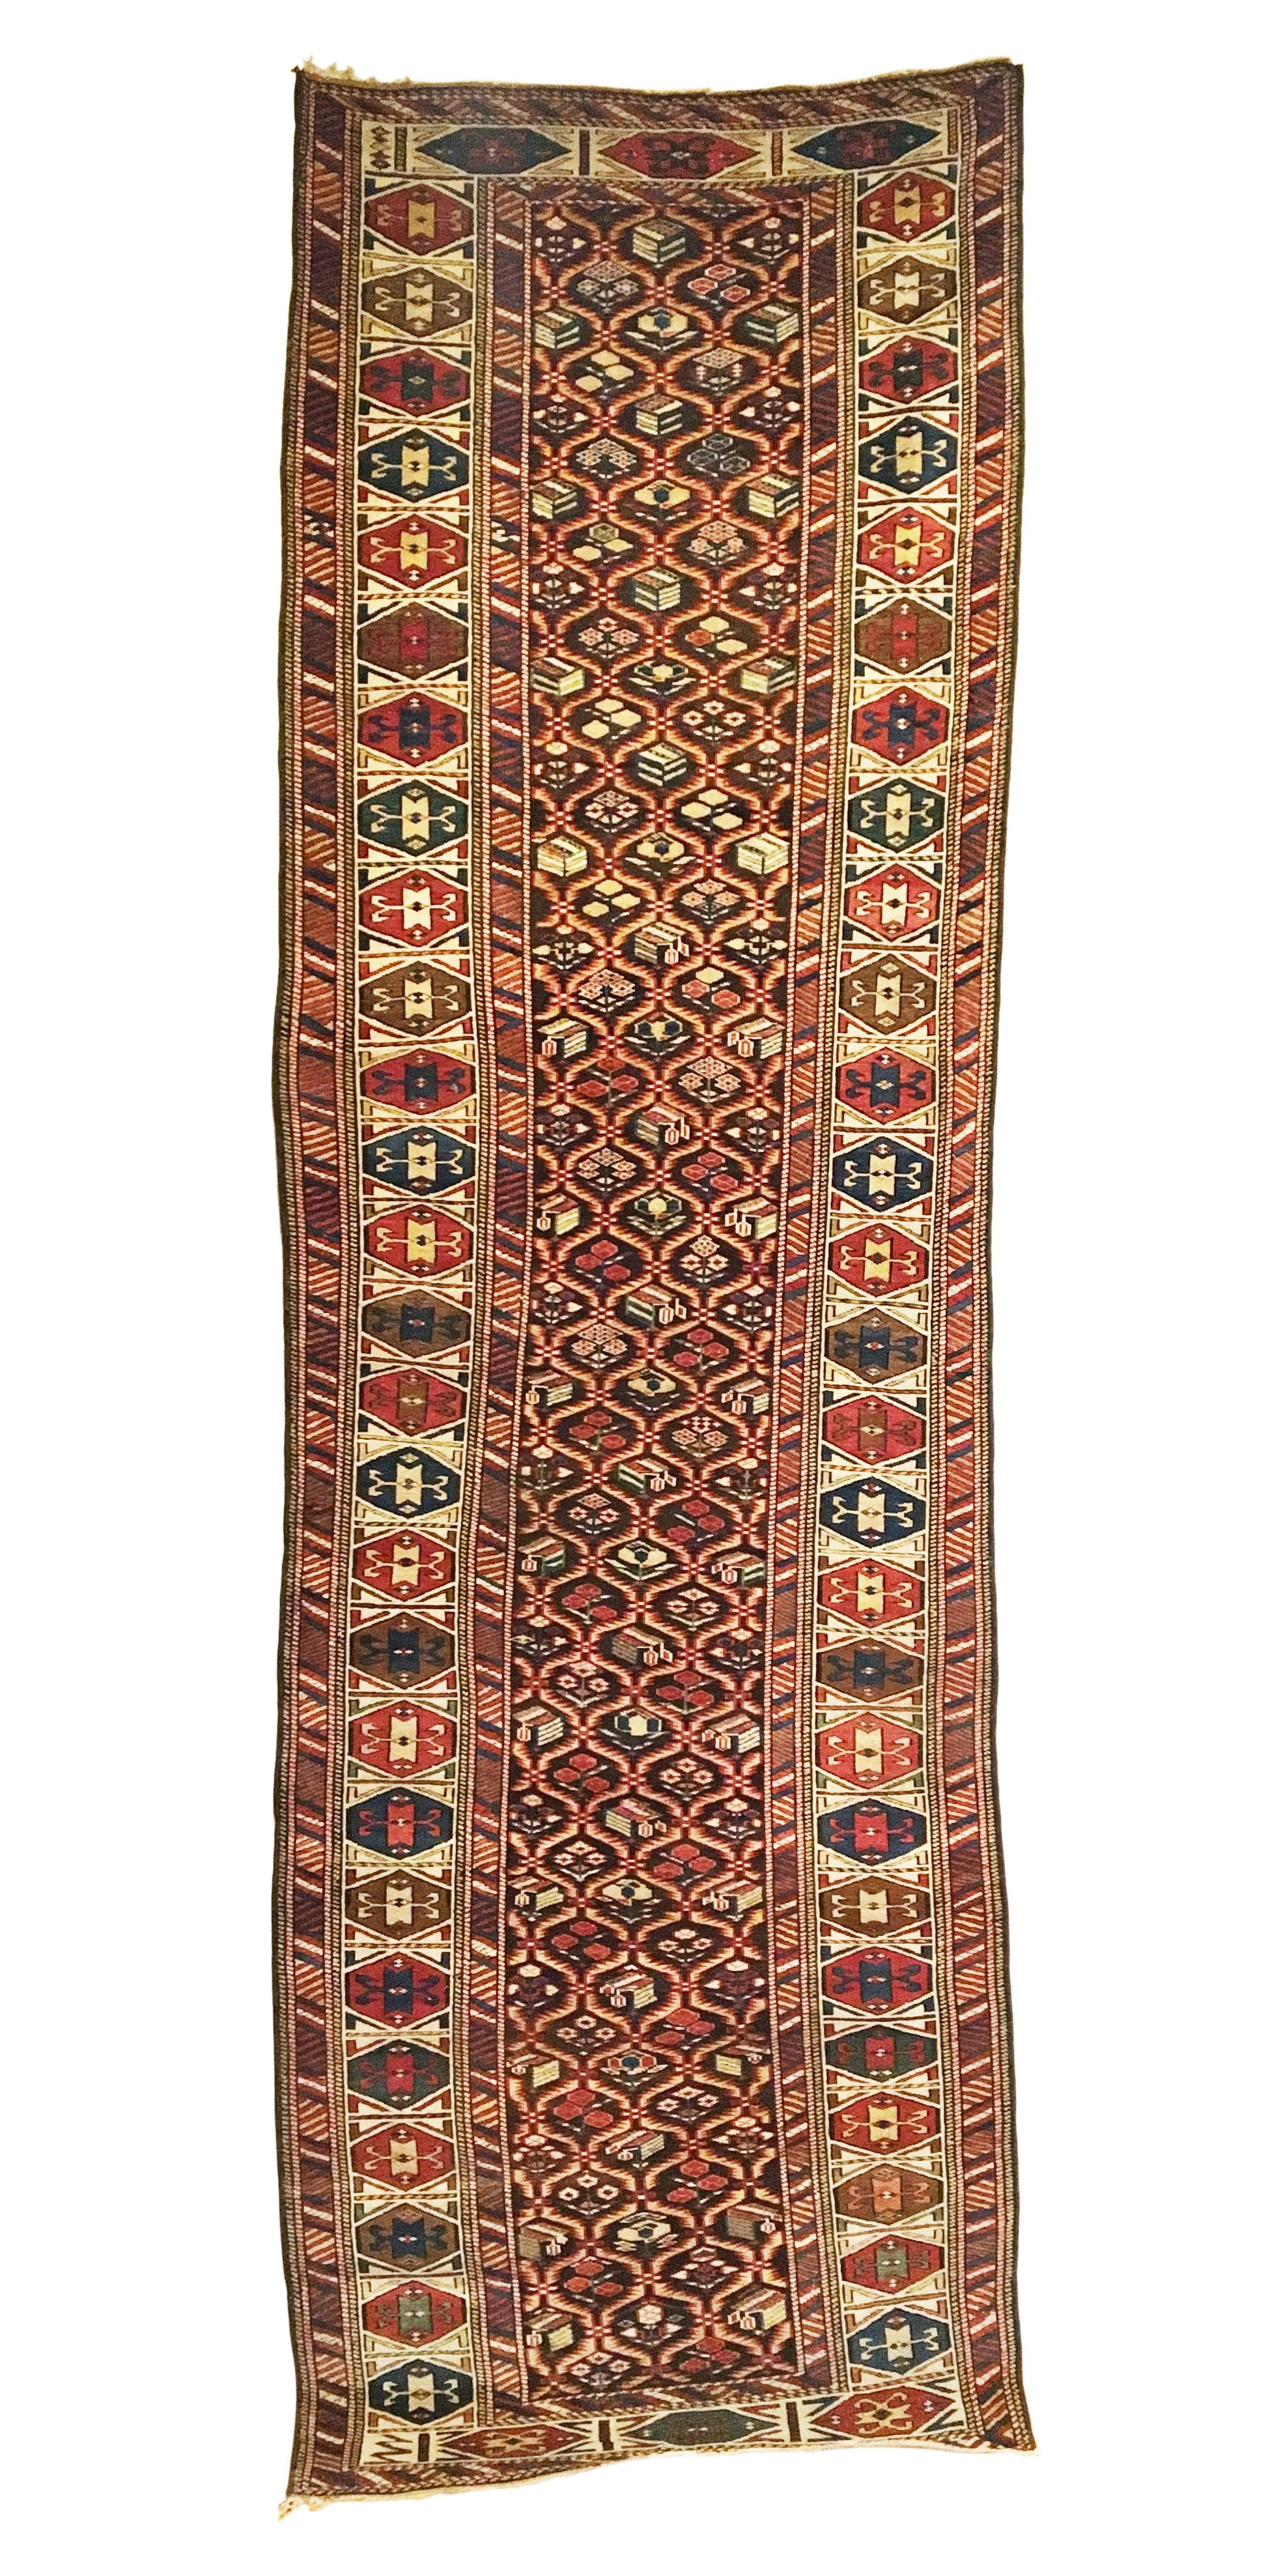 Antique Caucasian Dagestan Runner 3'4 x 10'5